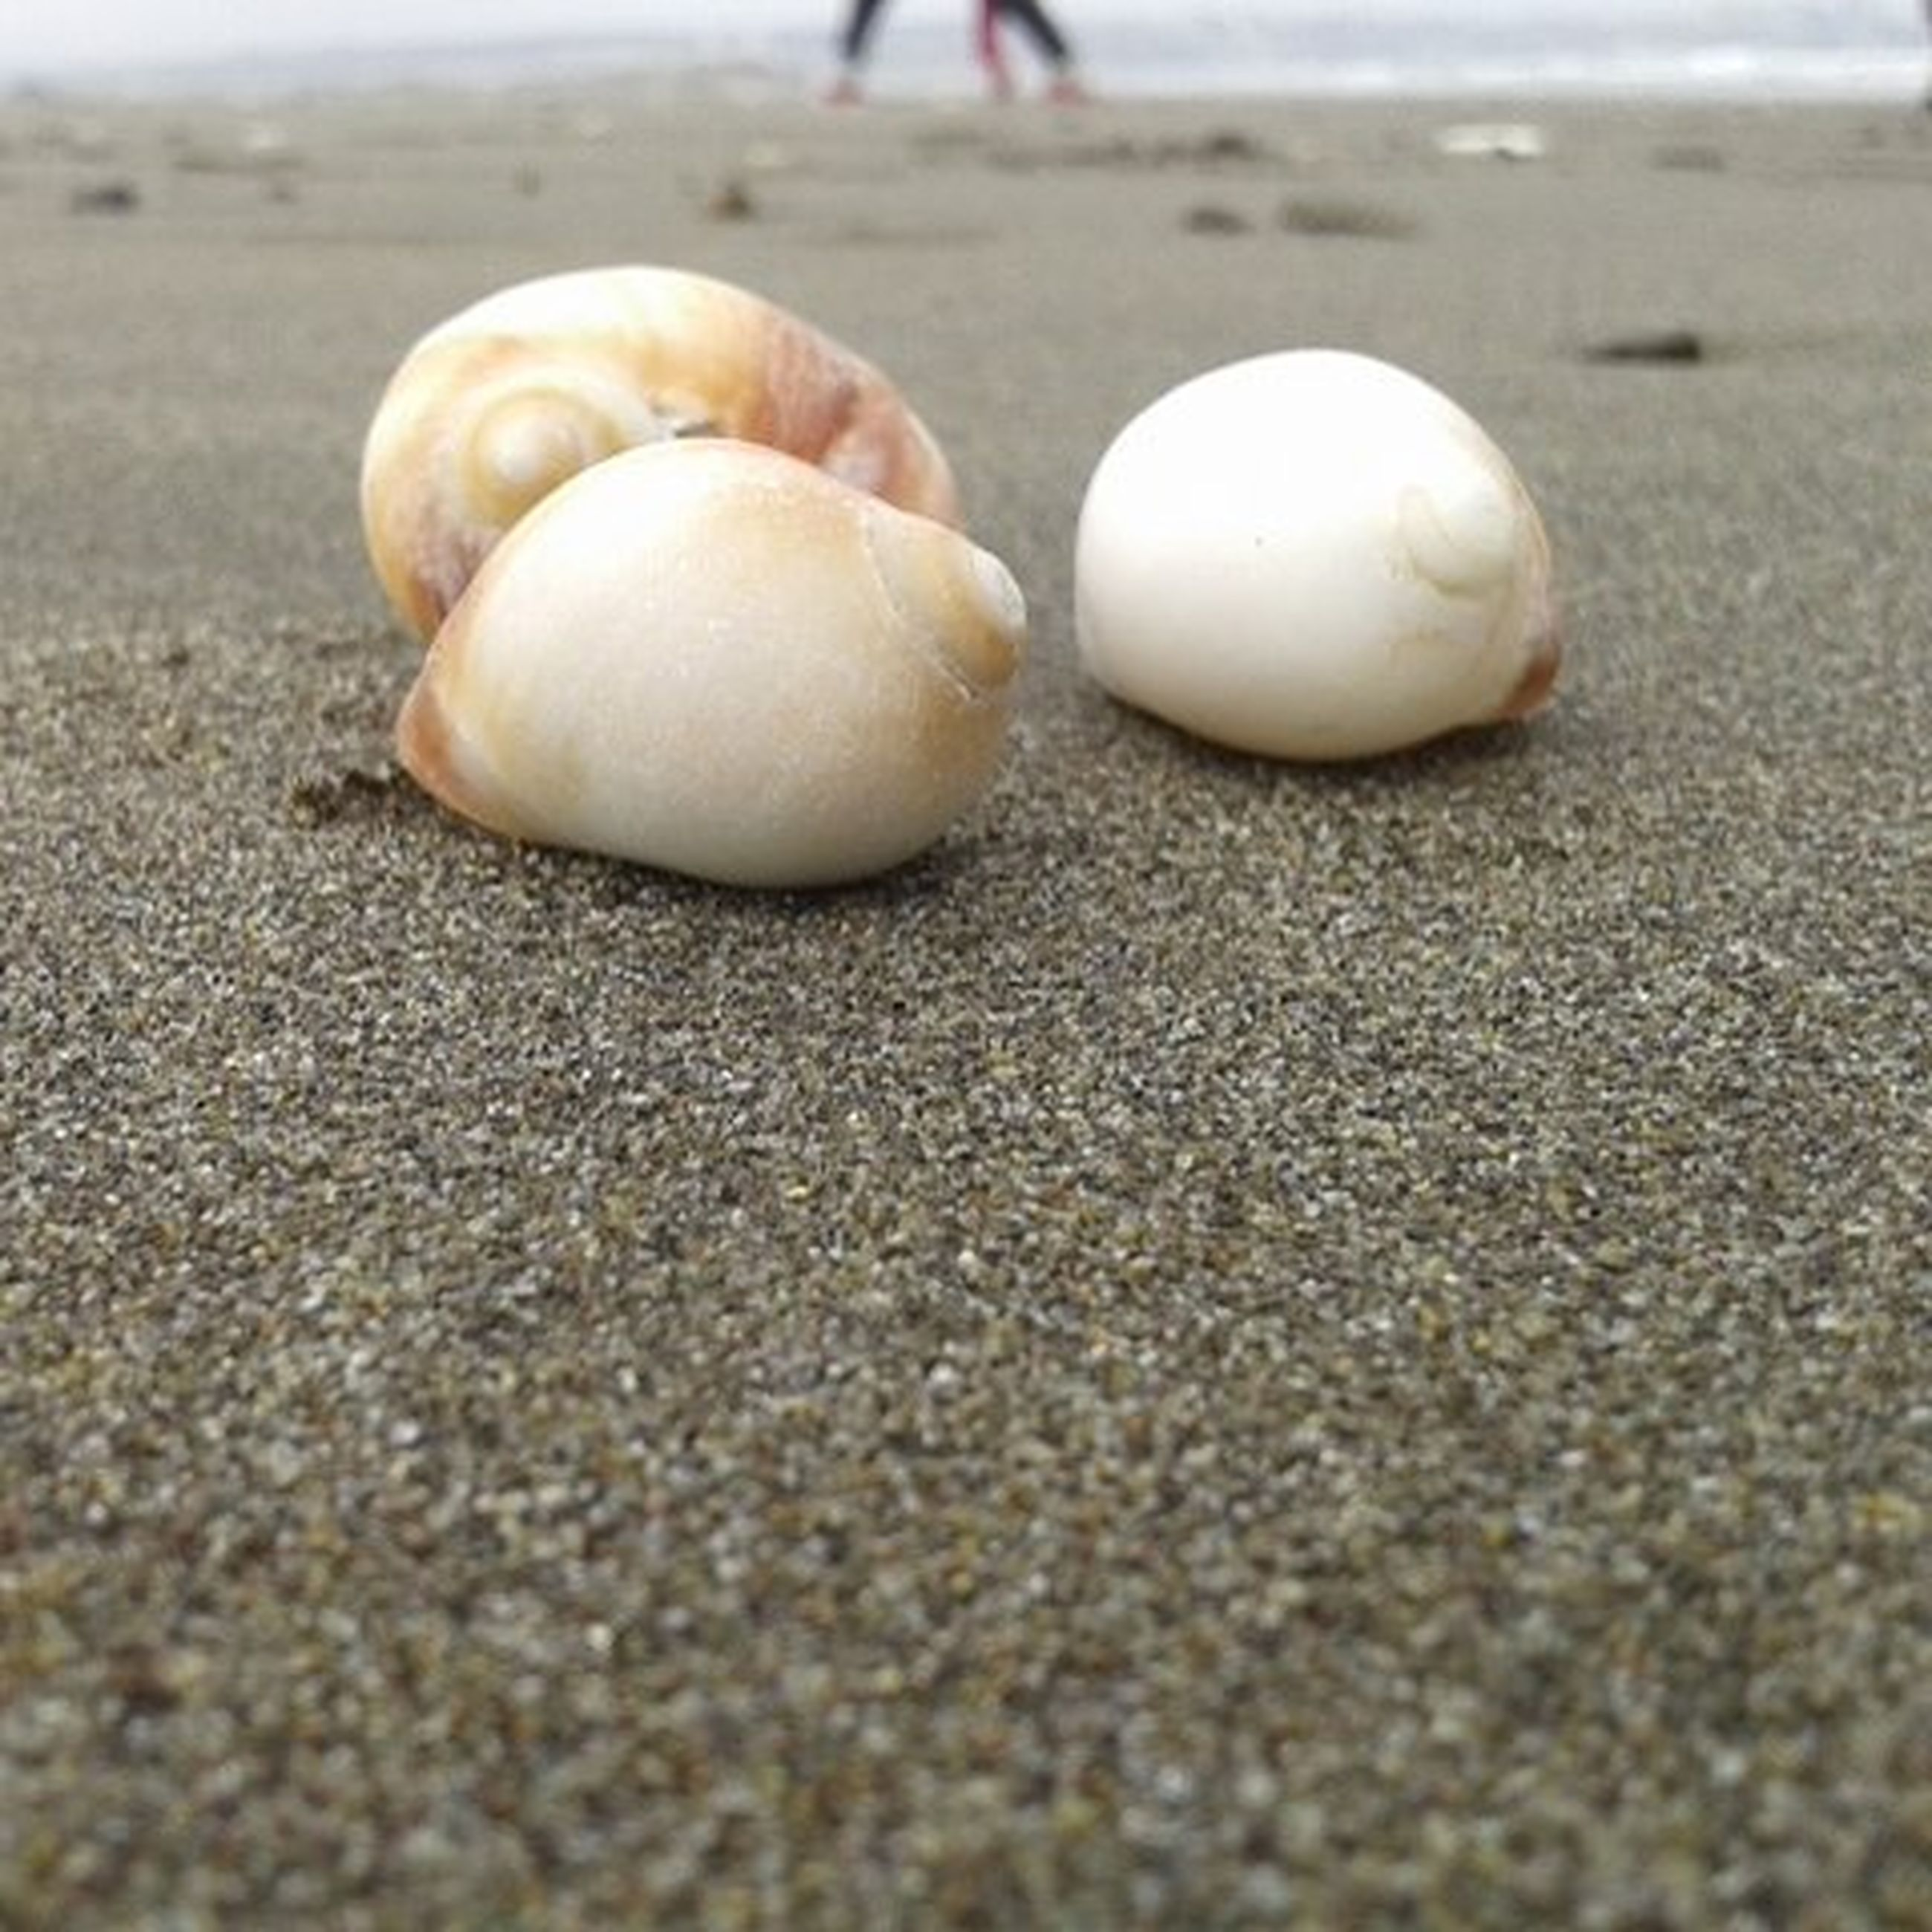 sand, beach, close-up, selective focus, surface level, seashell, animal shell, focus on foreground, day, shell, outdoors, still life, no people, pebble, textured, nature, sphere, sunlight, shore, street